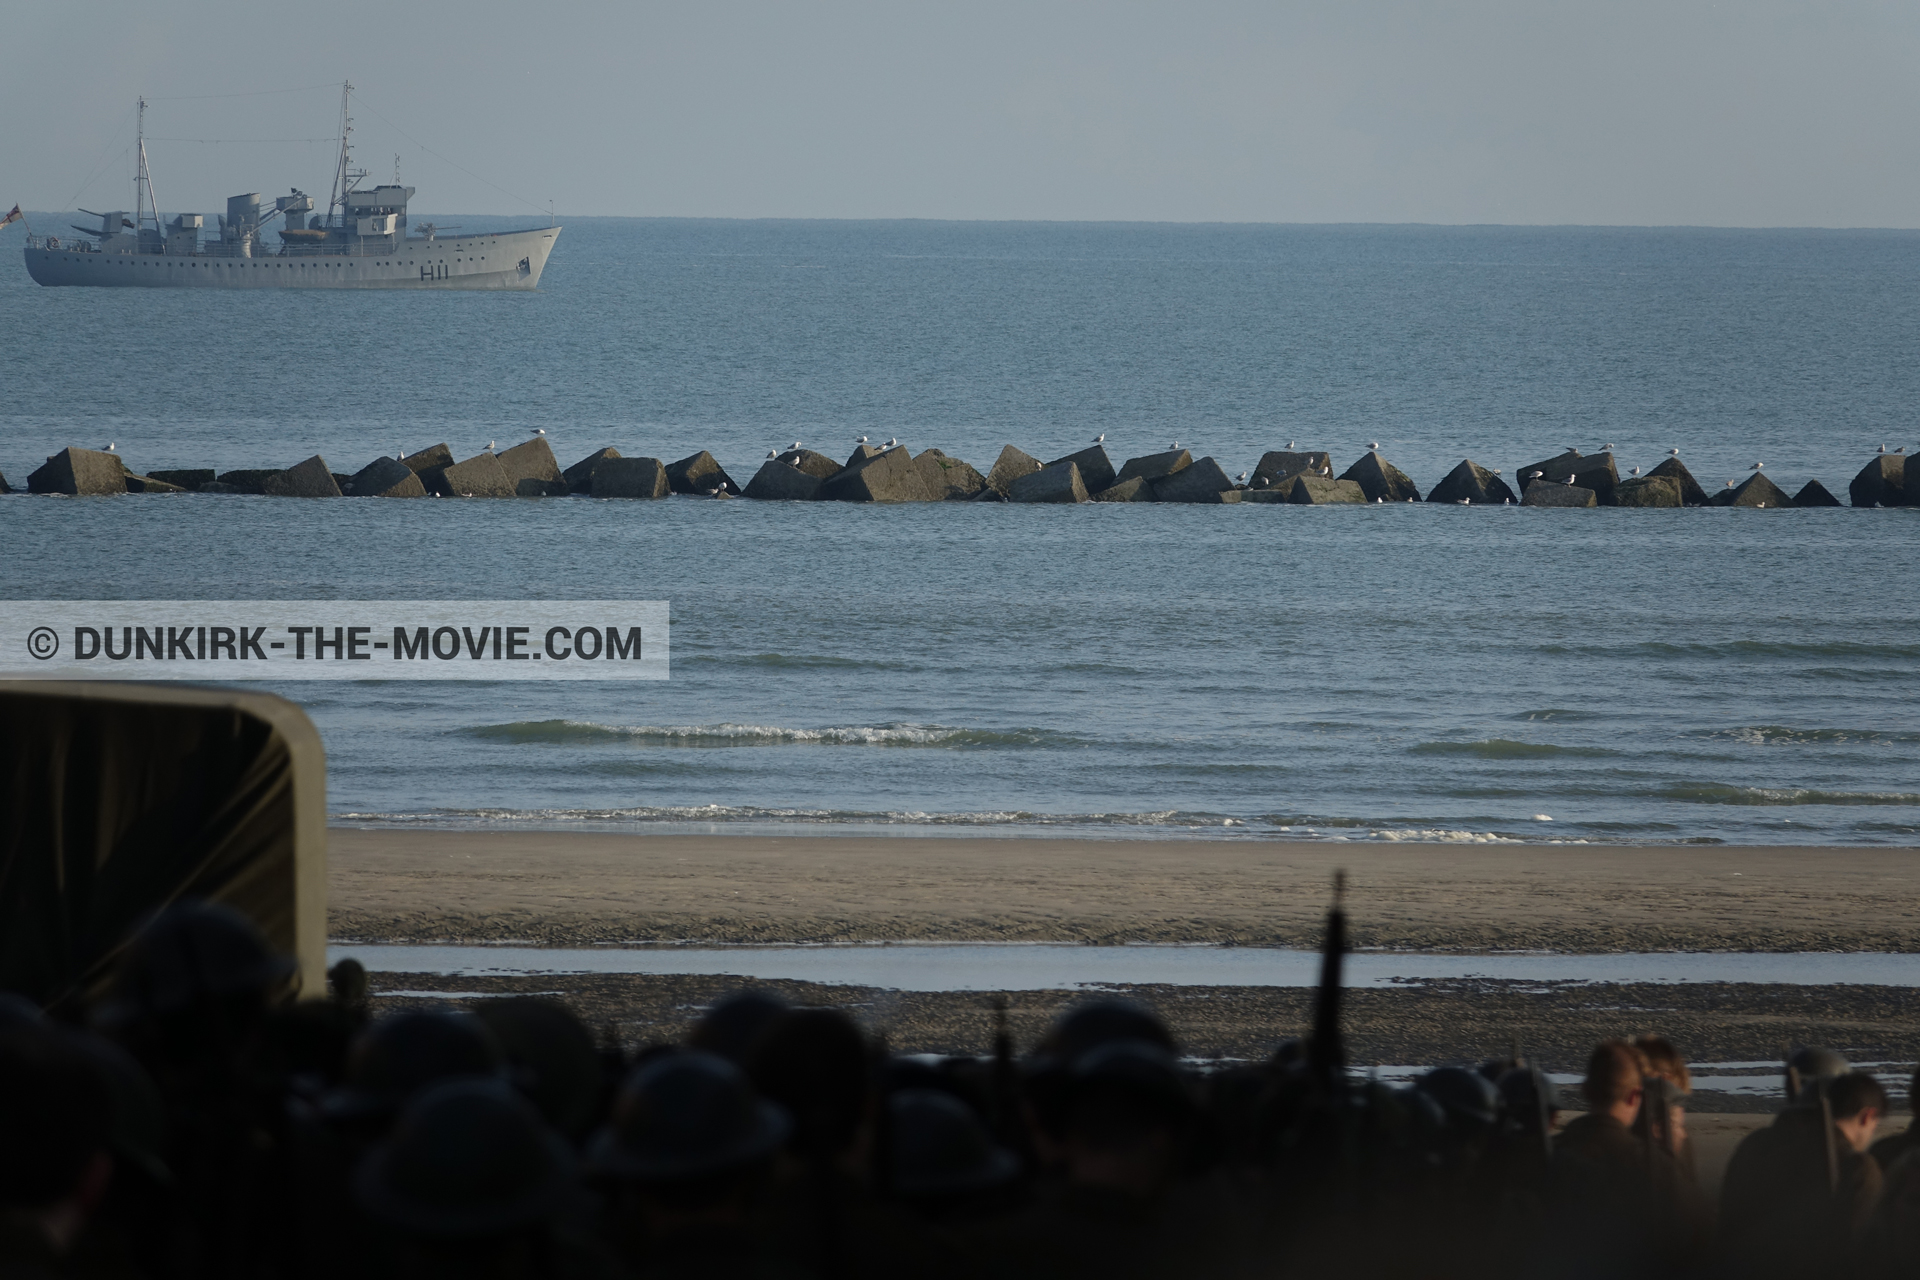 Picture with boat, truck, supernumeraries, beach,  from behind the scene of the Dunkirk movie by Nolan